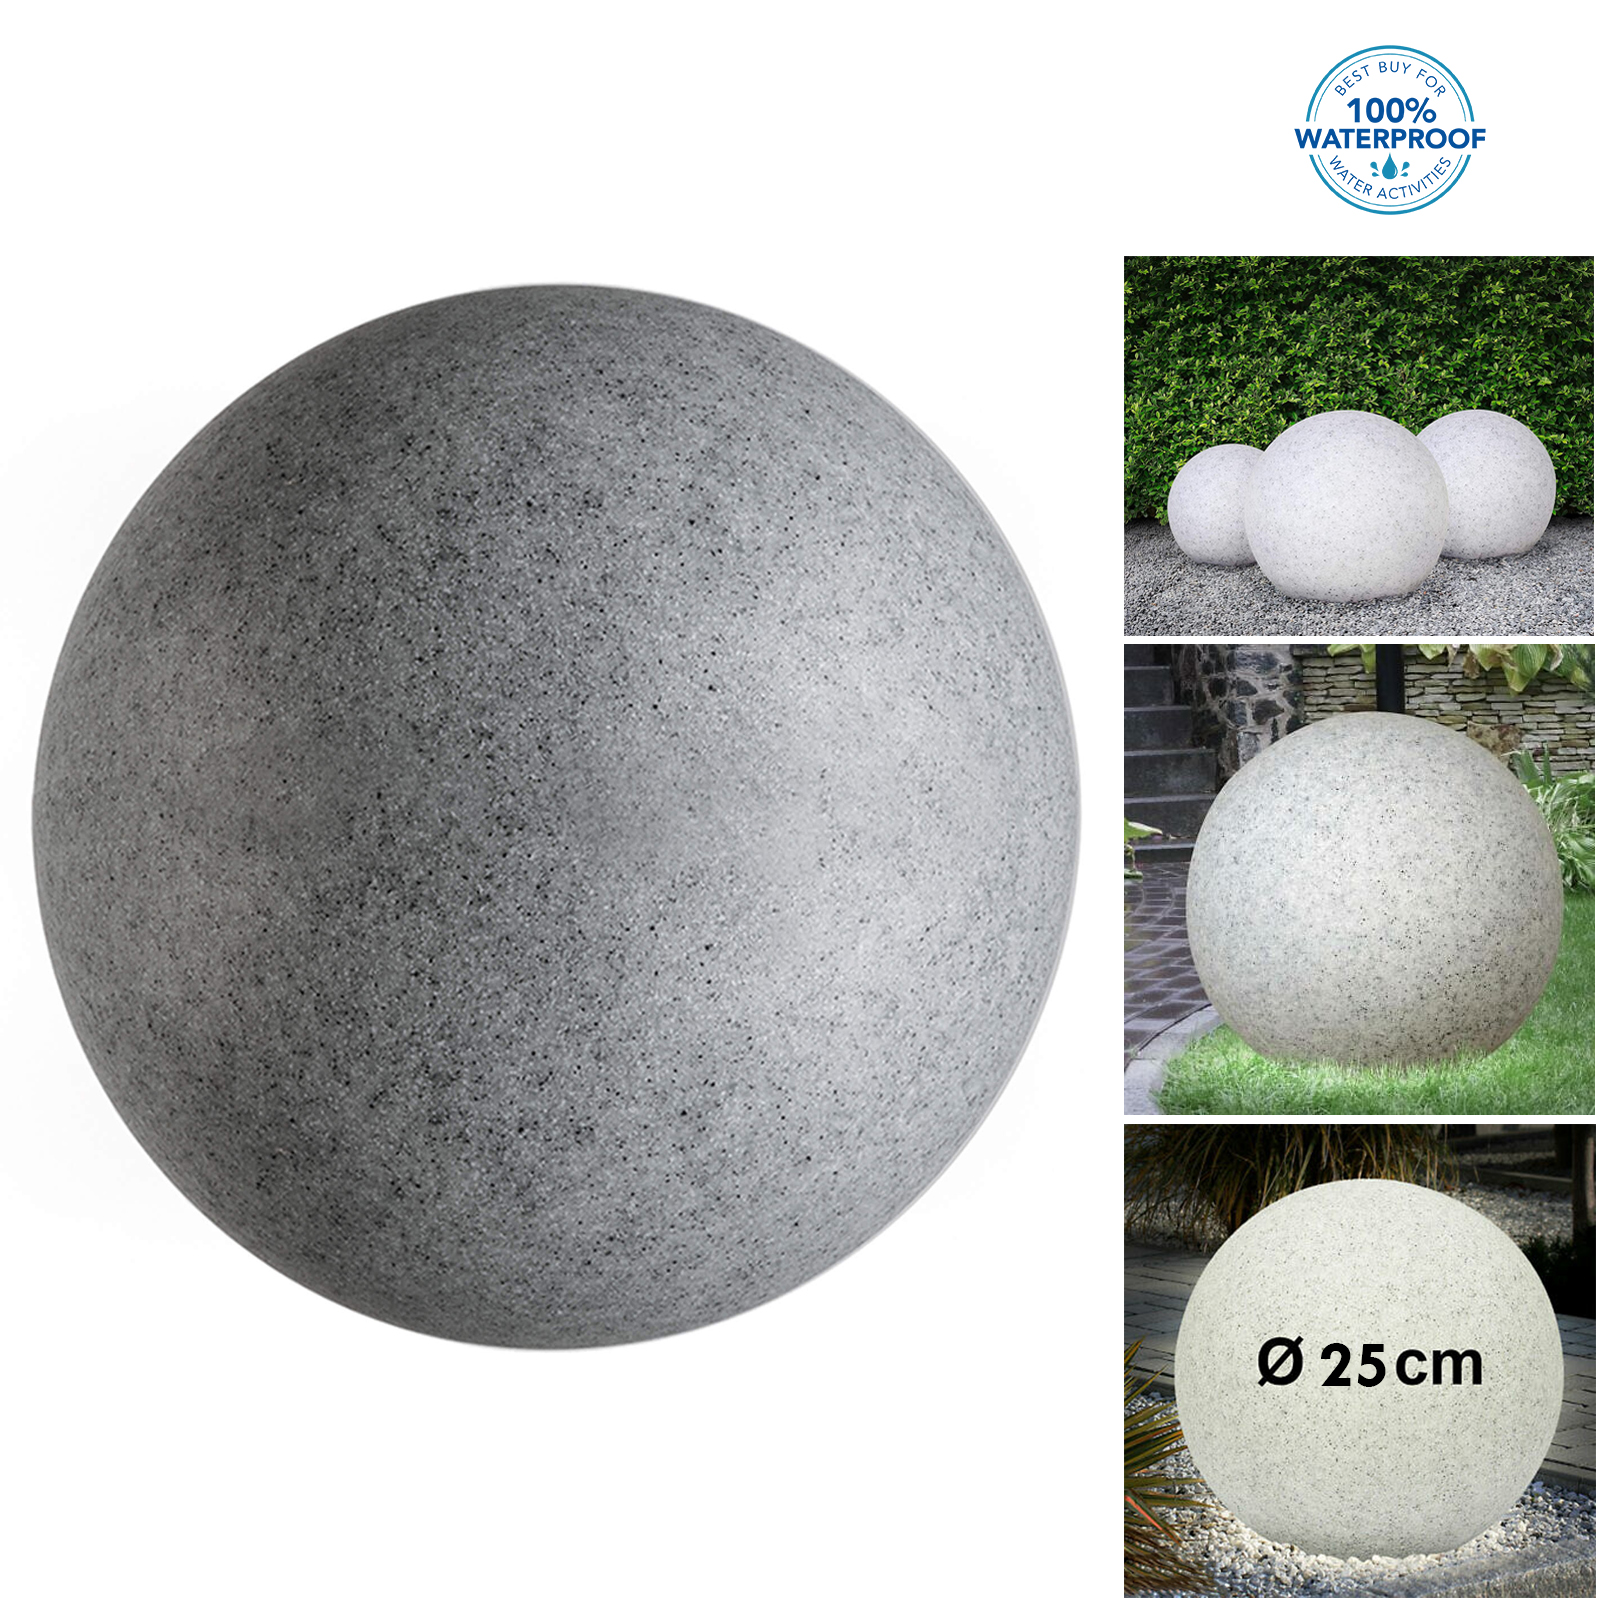 Ball of light stone LED 10W E27 decorative light RGB garden outdoor IP65 25cm